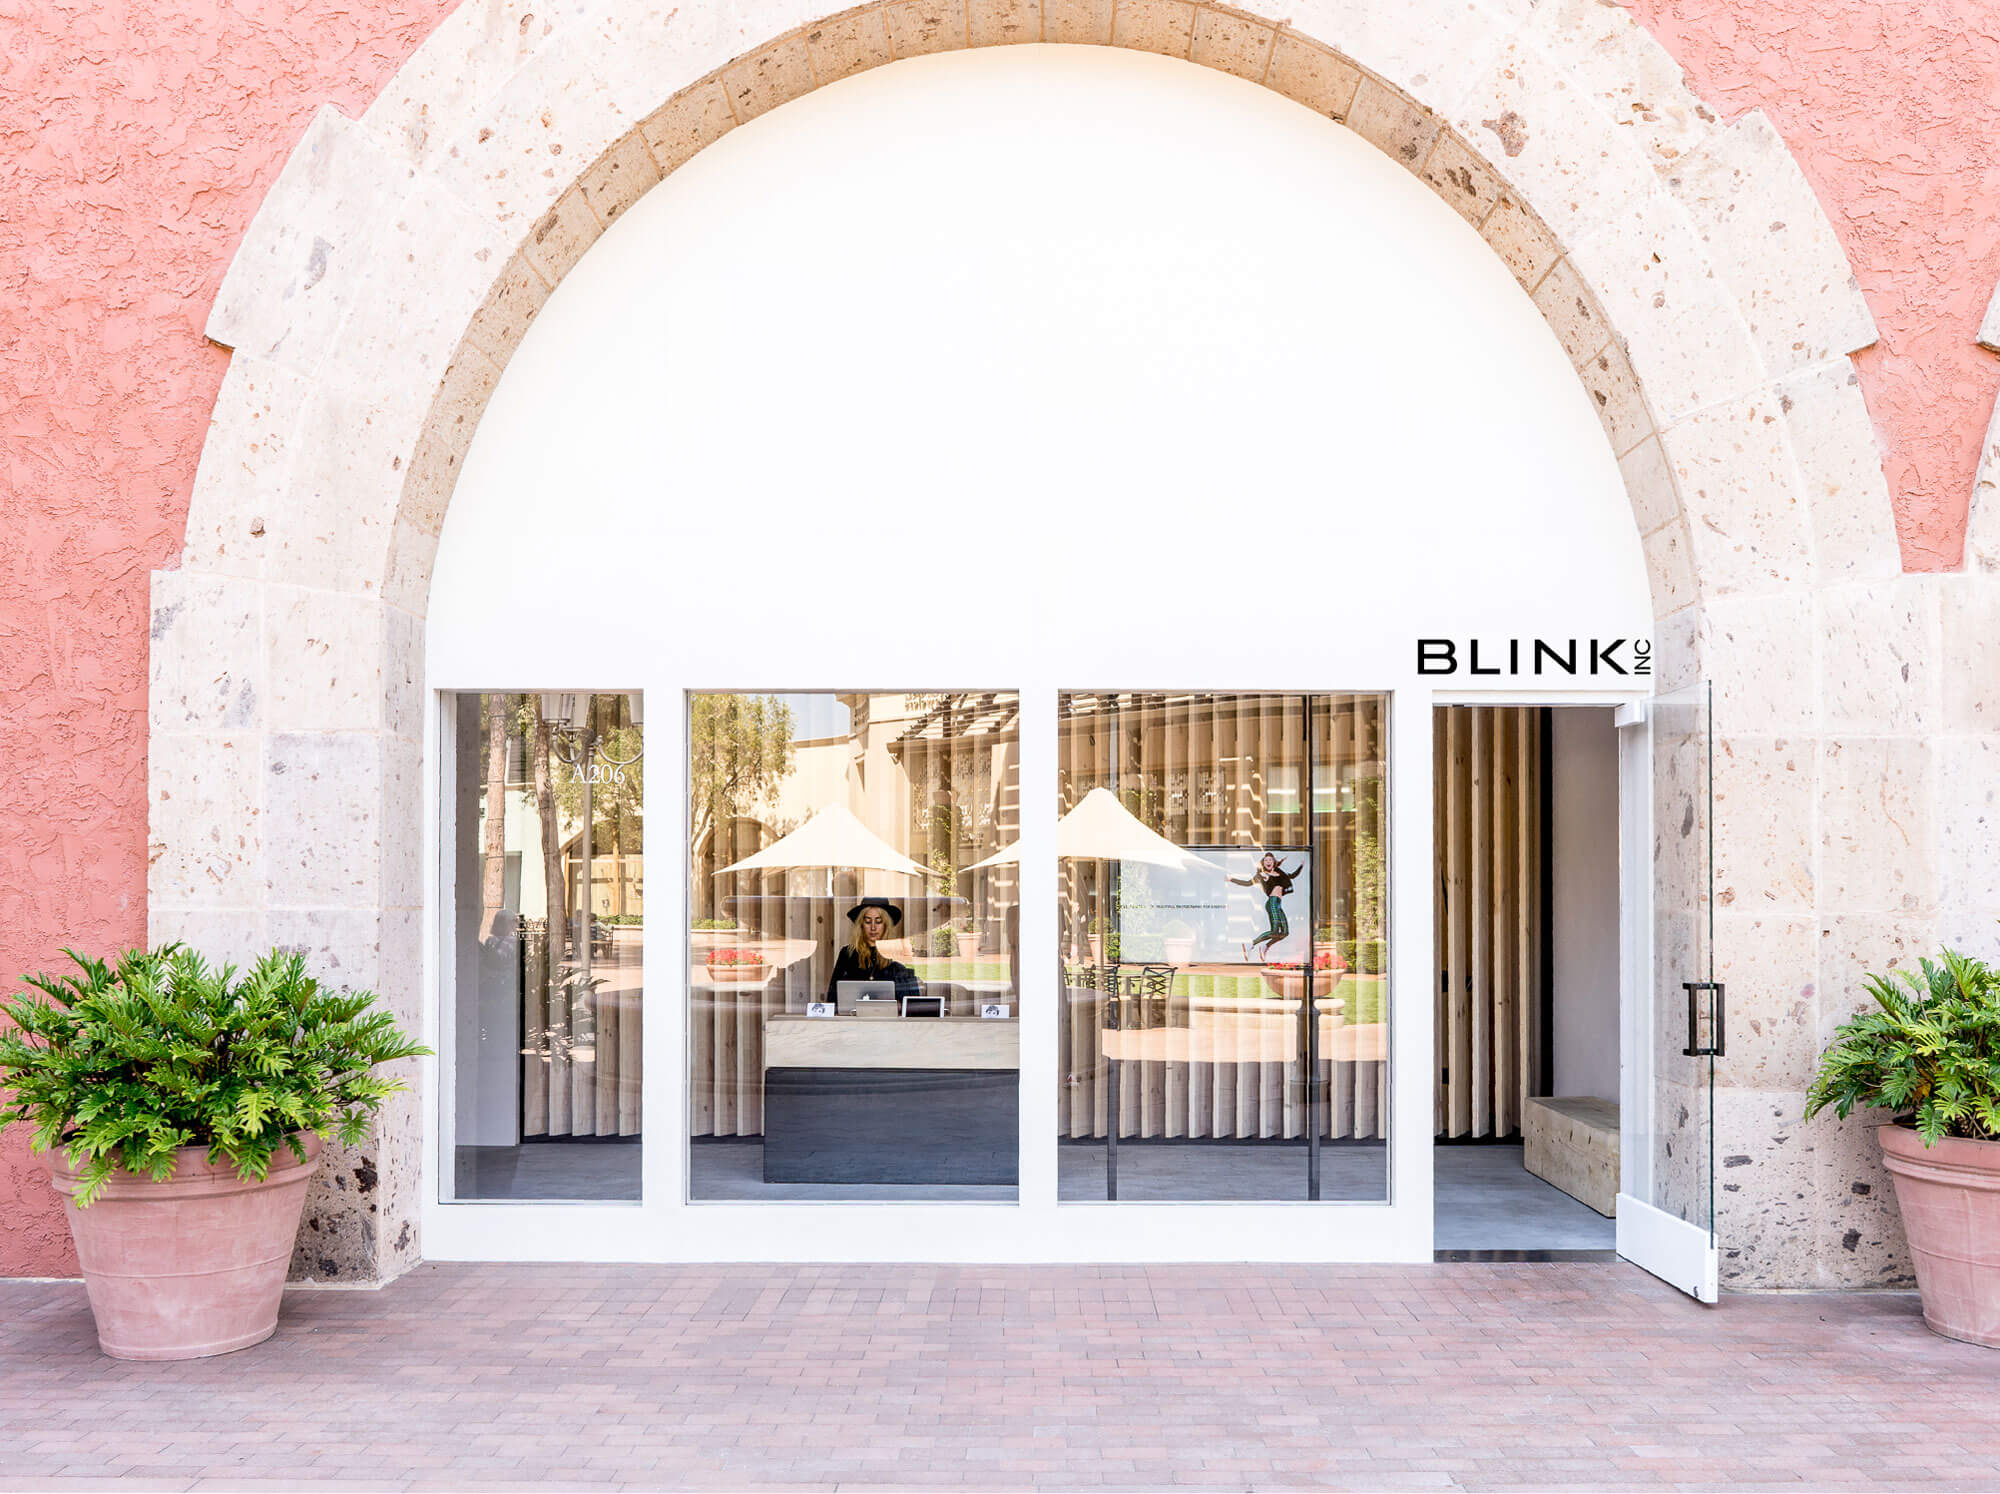 Blink inc rapt studio for 111 maiden lane salon san francisco